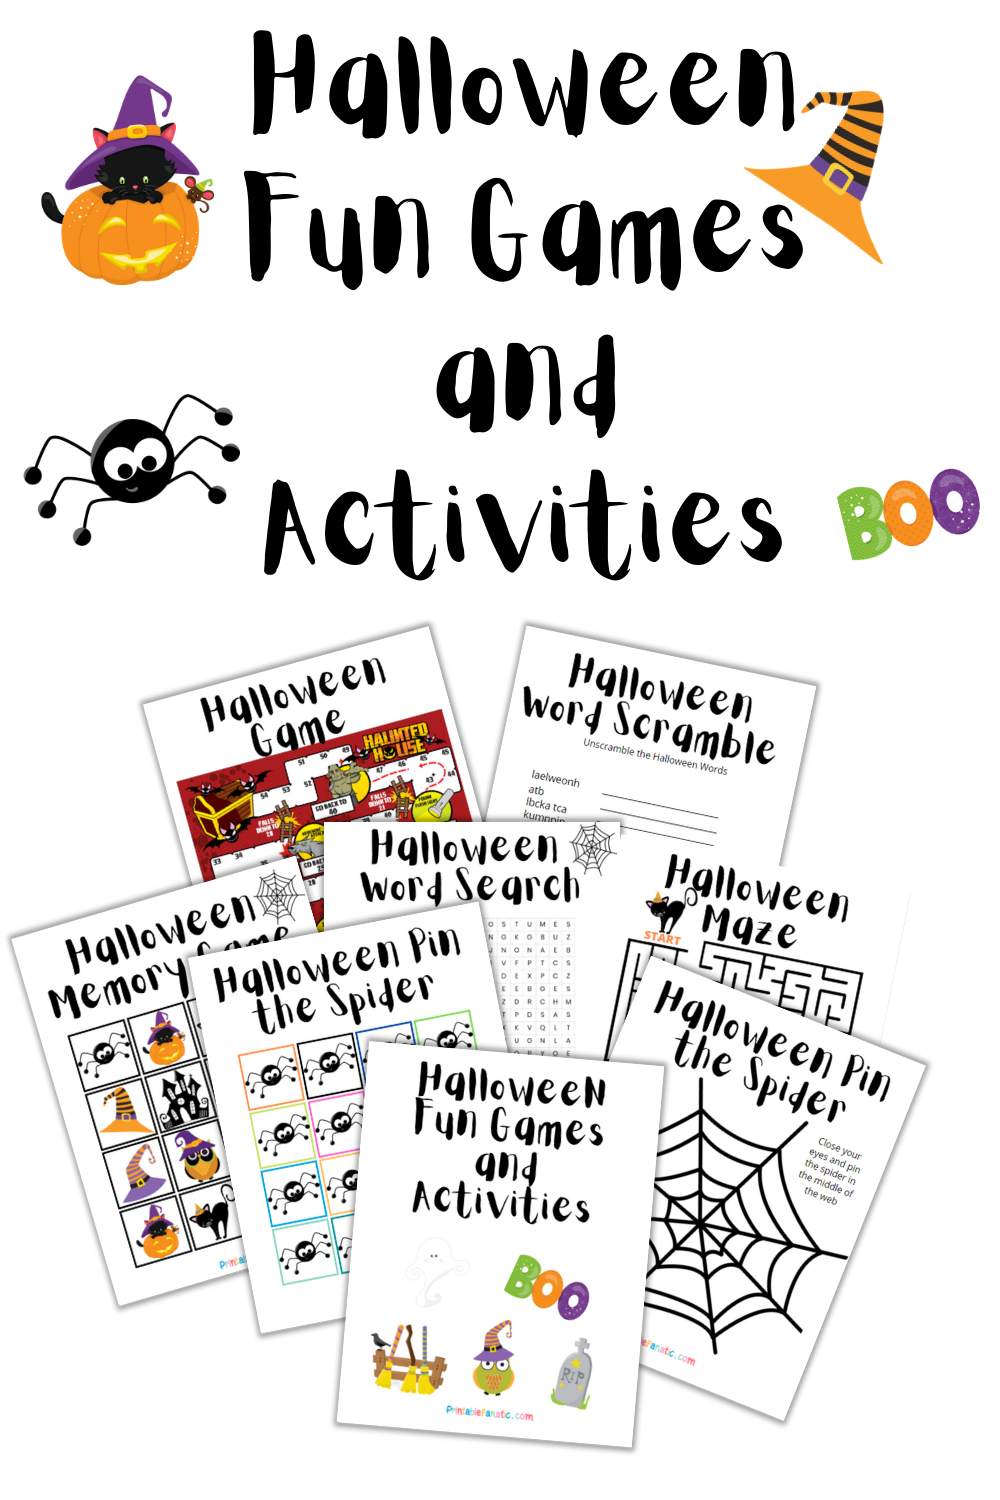 Pin Image of all the Halloween Fun game printables